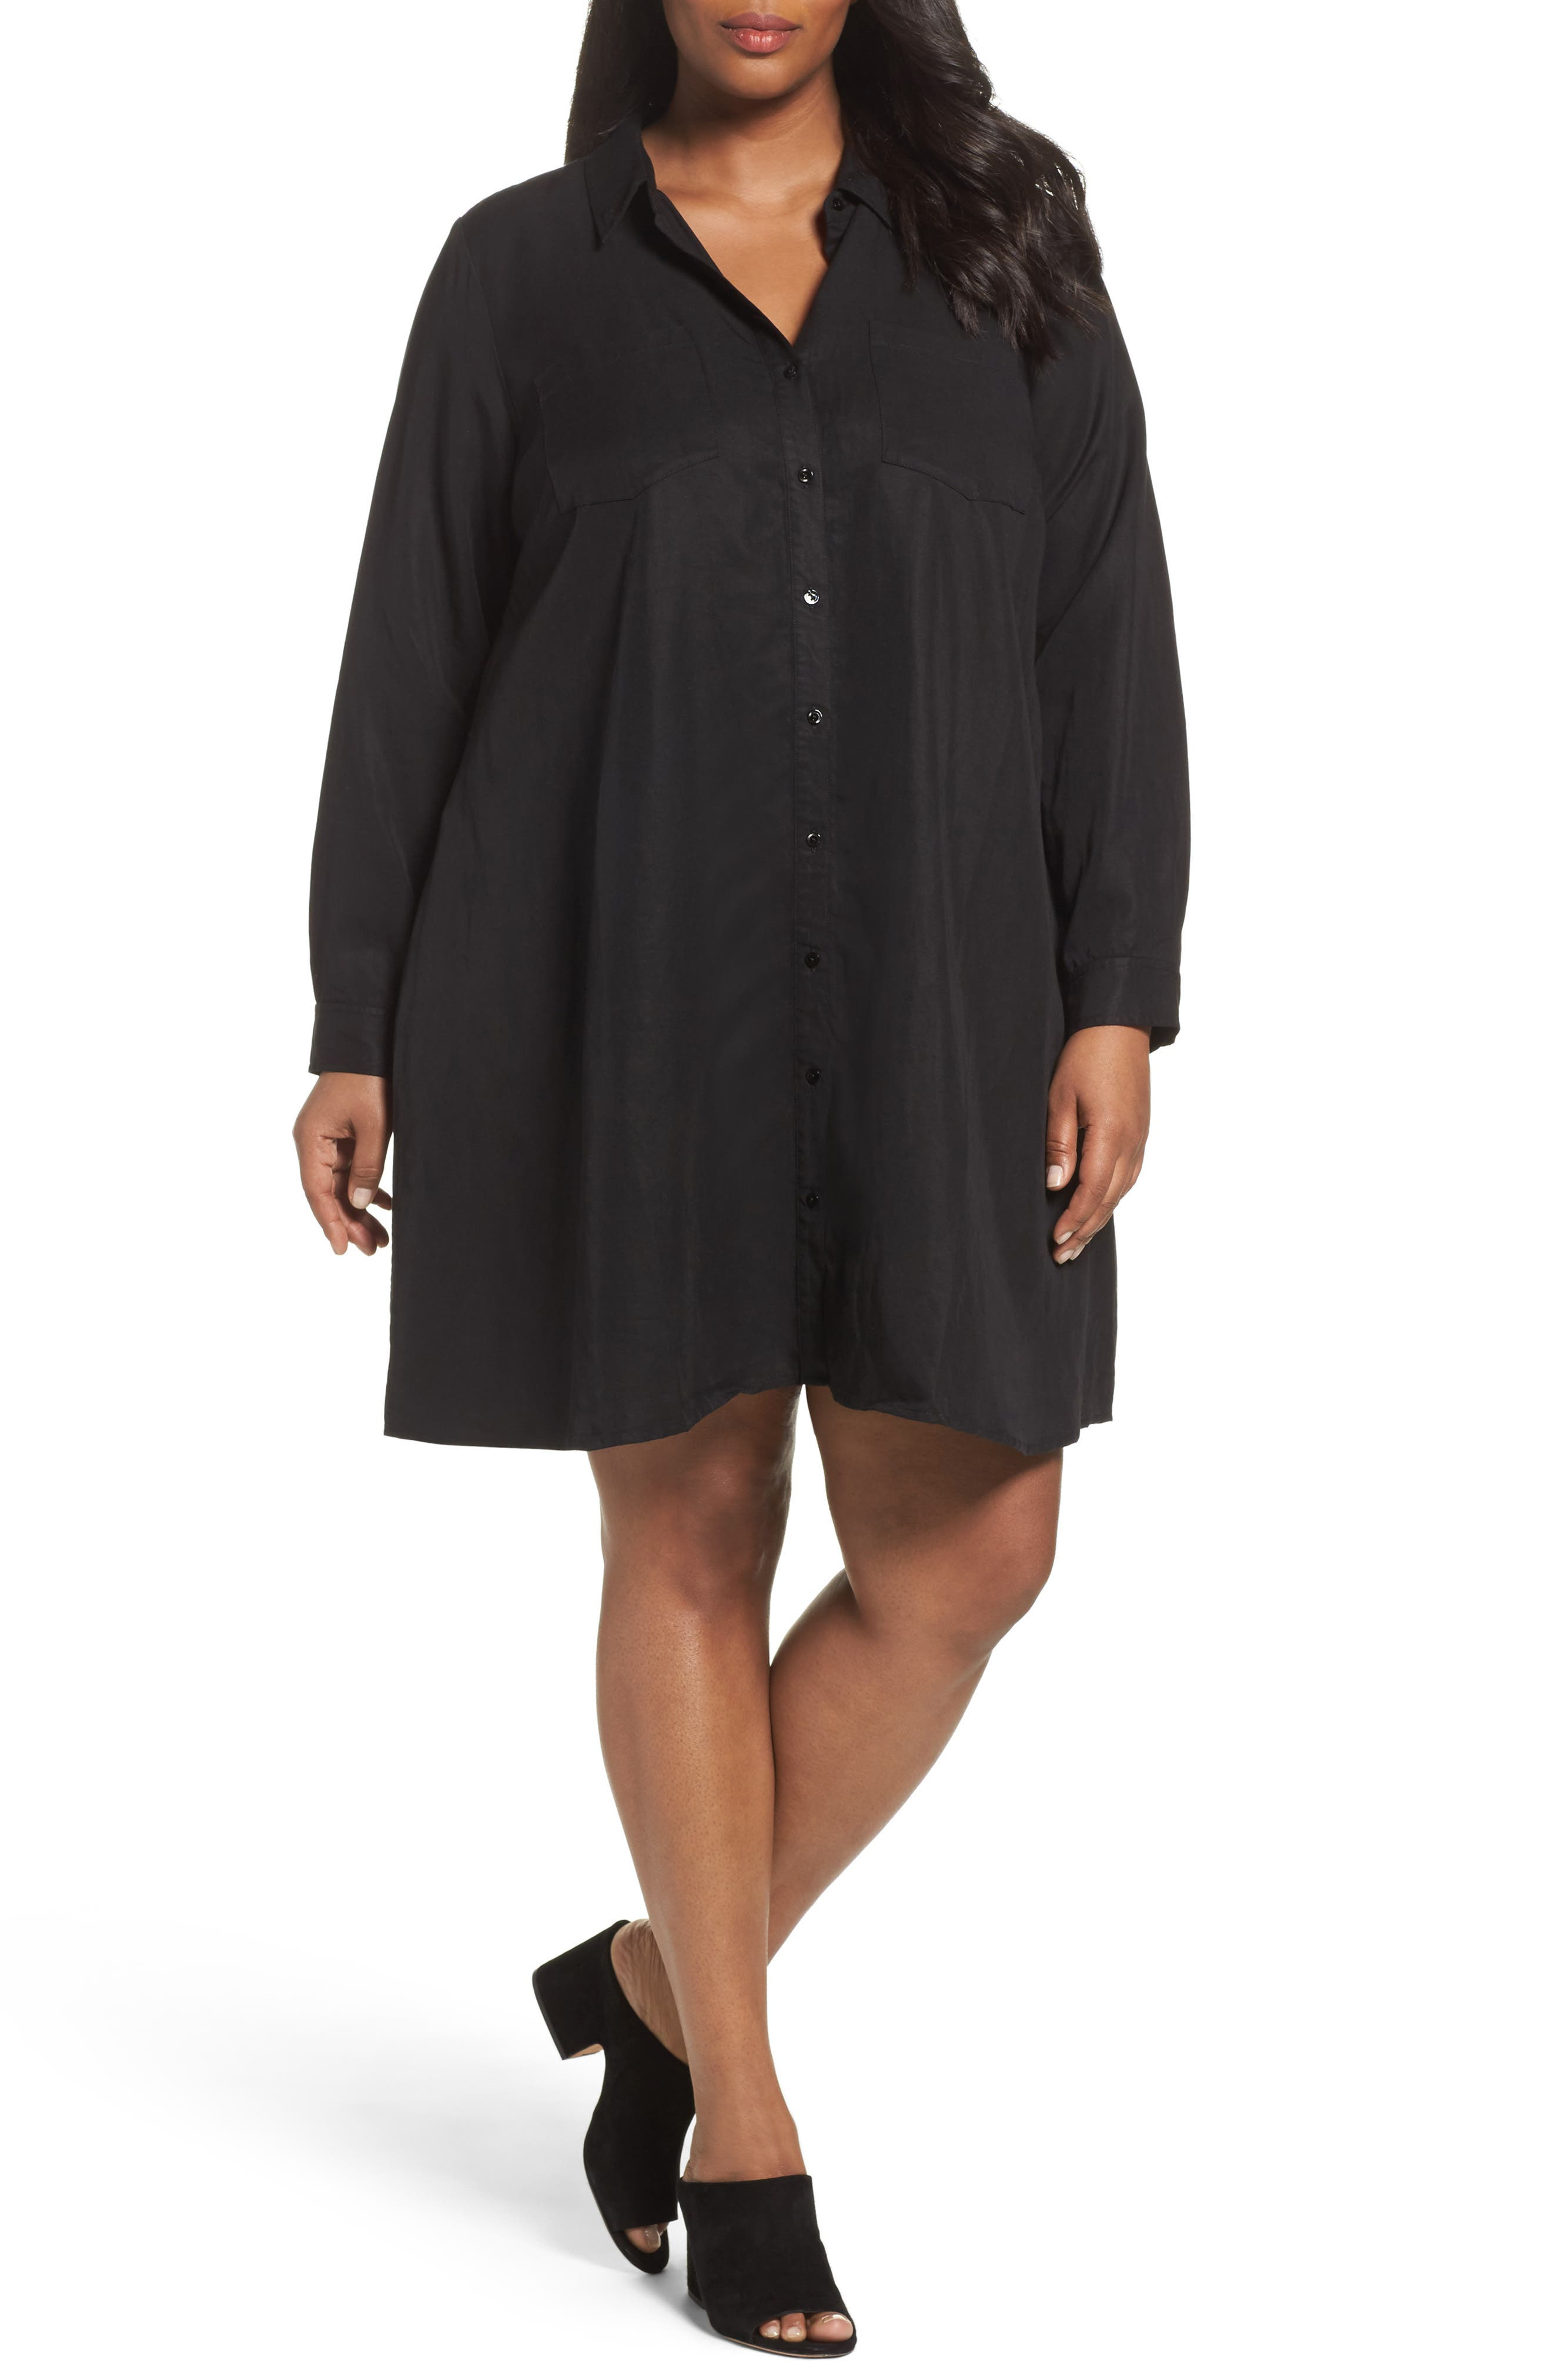 Alternate Image 1 Selected - Eileen Fisher Classic Collar A-Line Shirtdress (Plus Size)